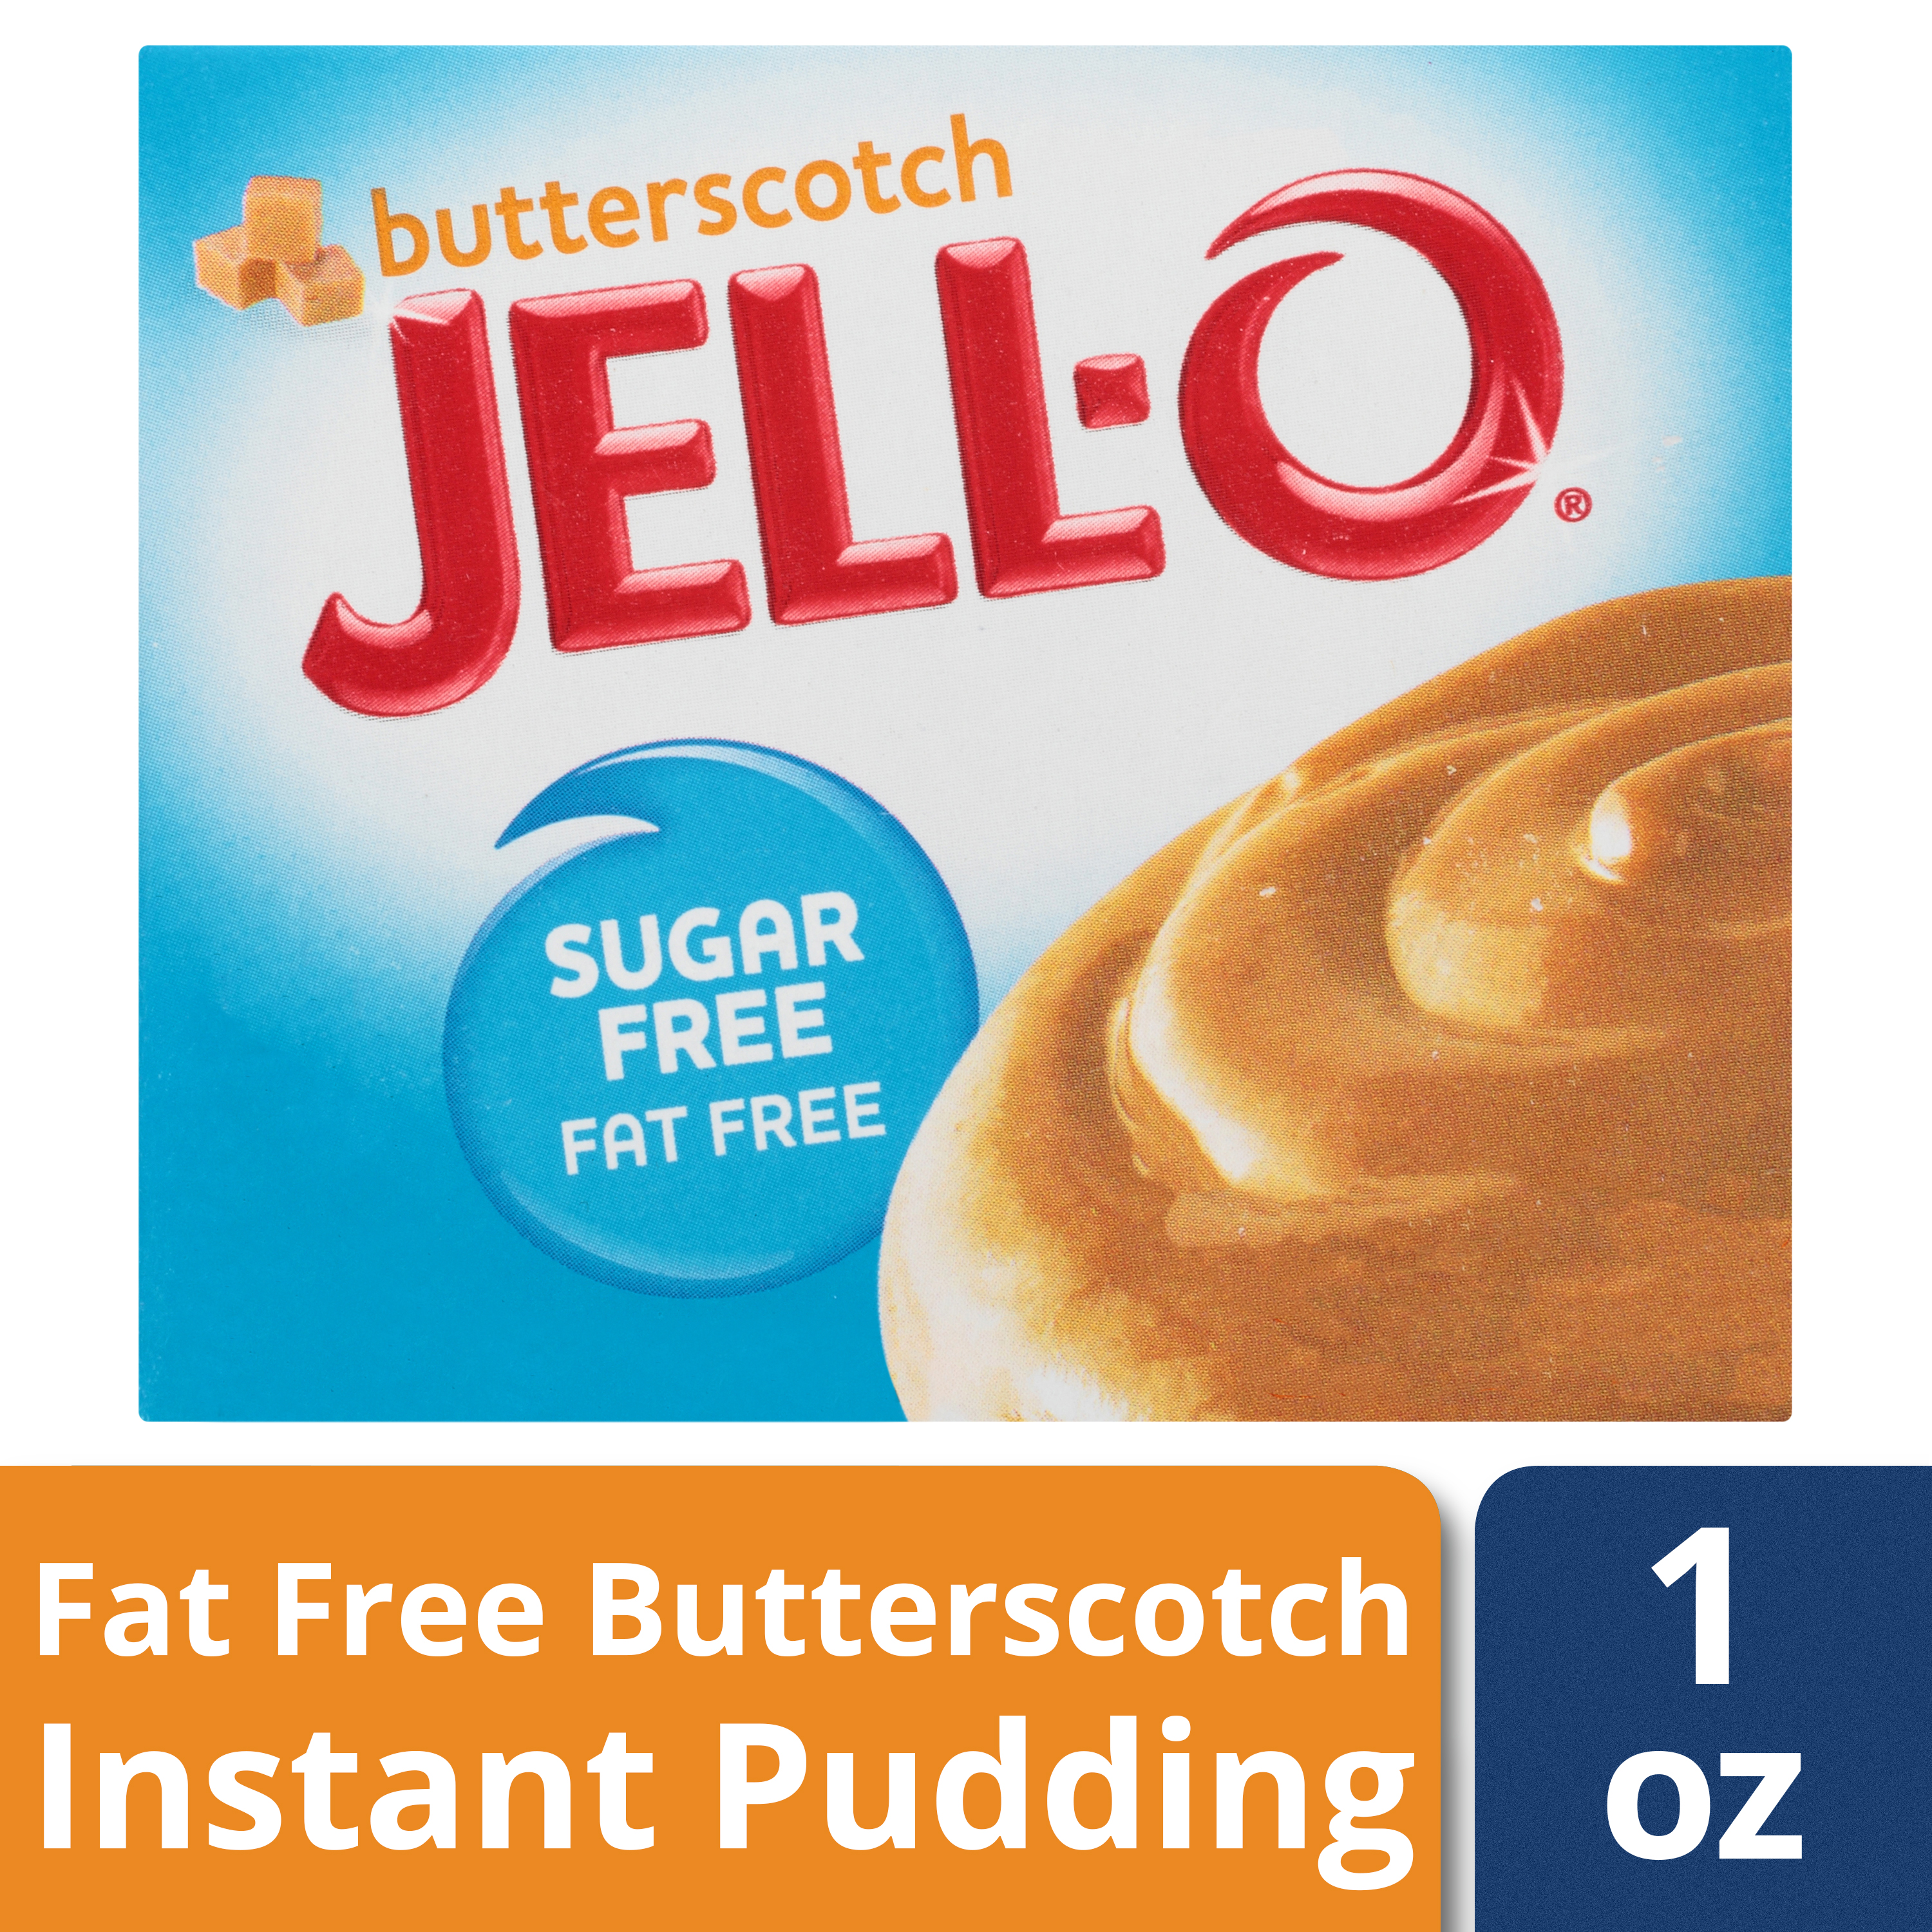 (4 Pack) Jell-O Instant Sugar-Free Fat-Free Butterscotch Pudding & Pie Filling, 1 oz Box